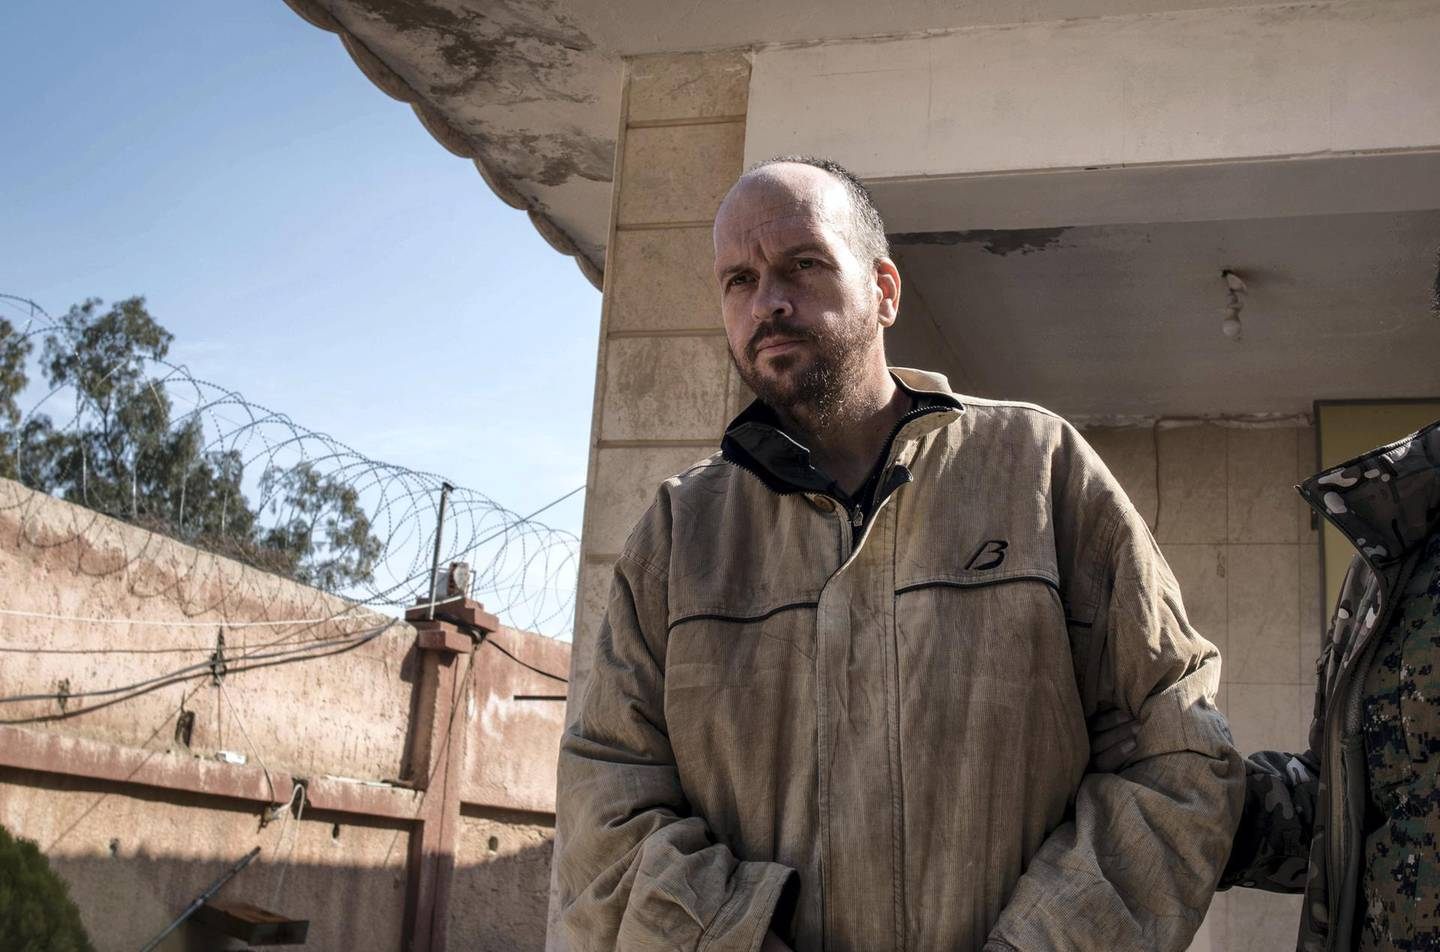 New Zealand ISIS supporter Mark Taylor inside a Kurdish security facility in northern Syria, March 5 2019.  surrendering to Syrian Democratic Forces. Campbell MacDiarmid